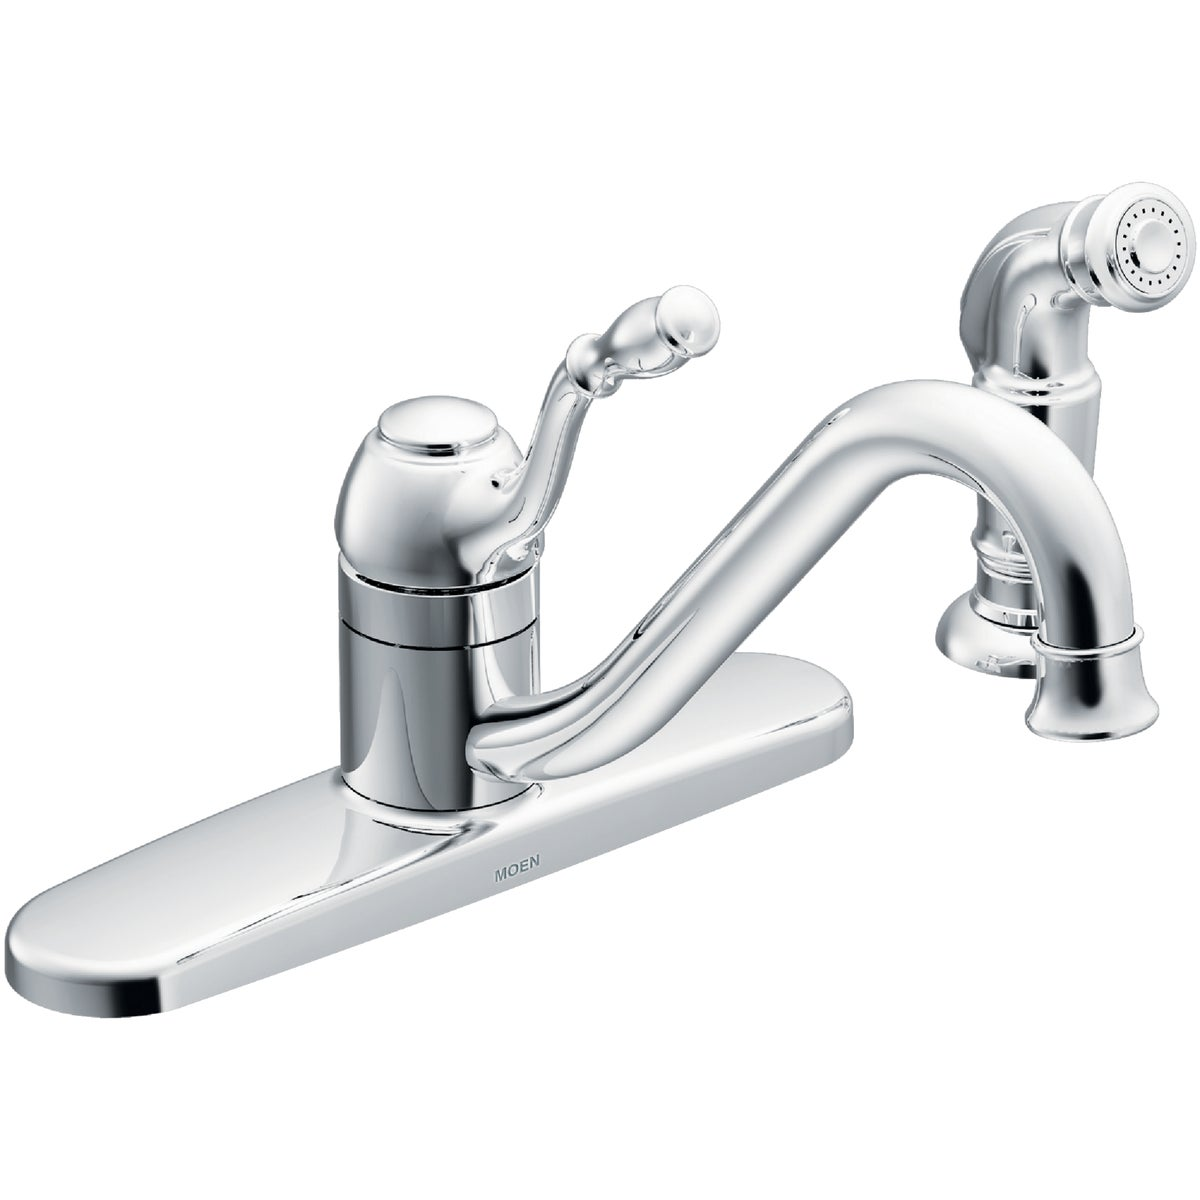 1H CH KIT FAUCET W/SPRY - CA87009 by Moen Inc